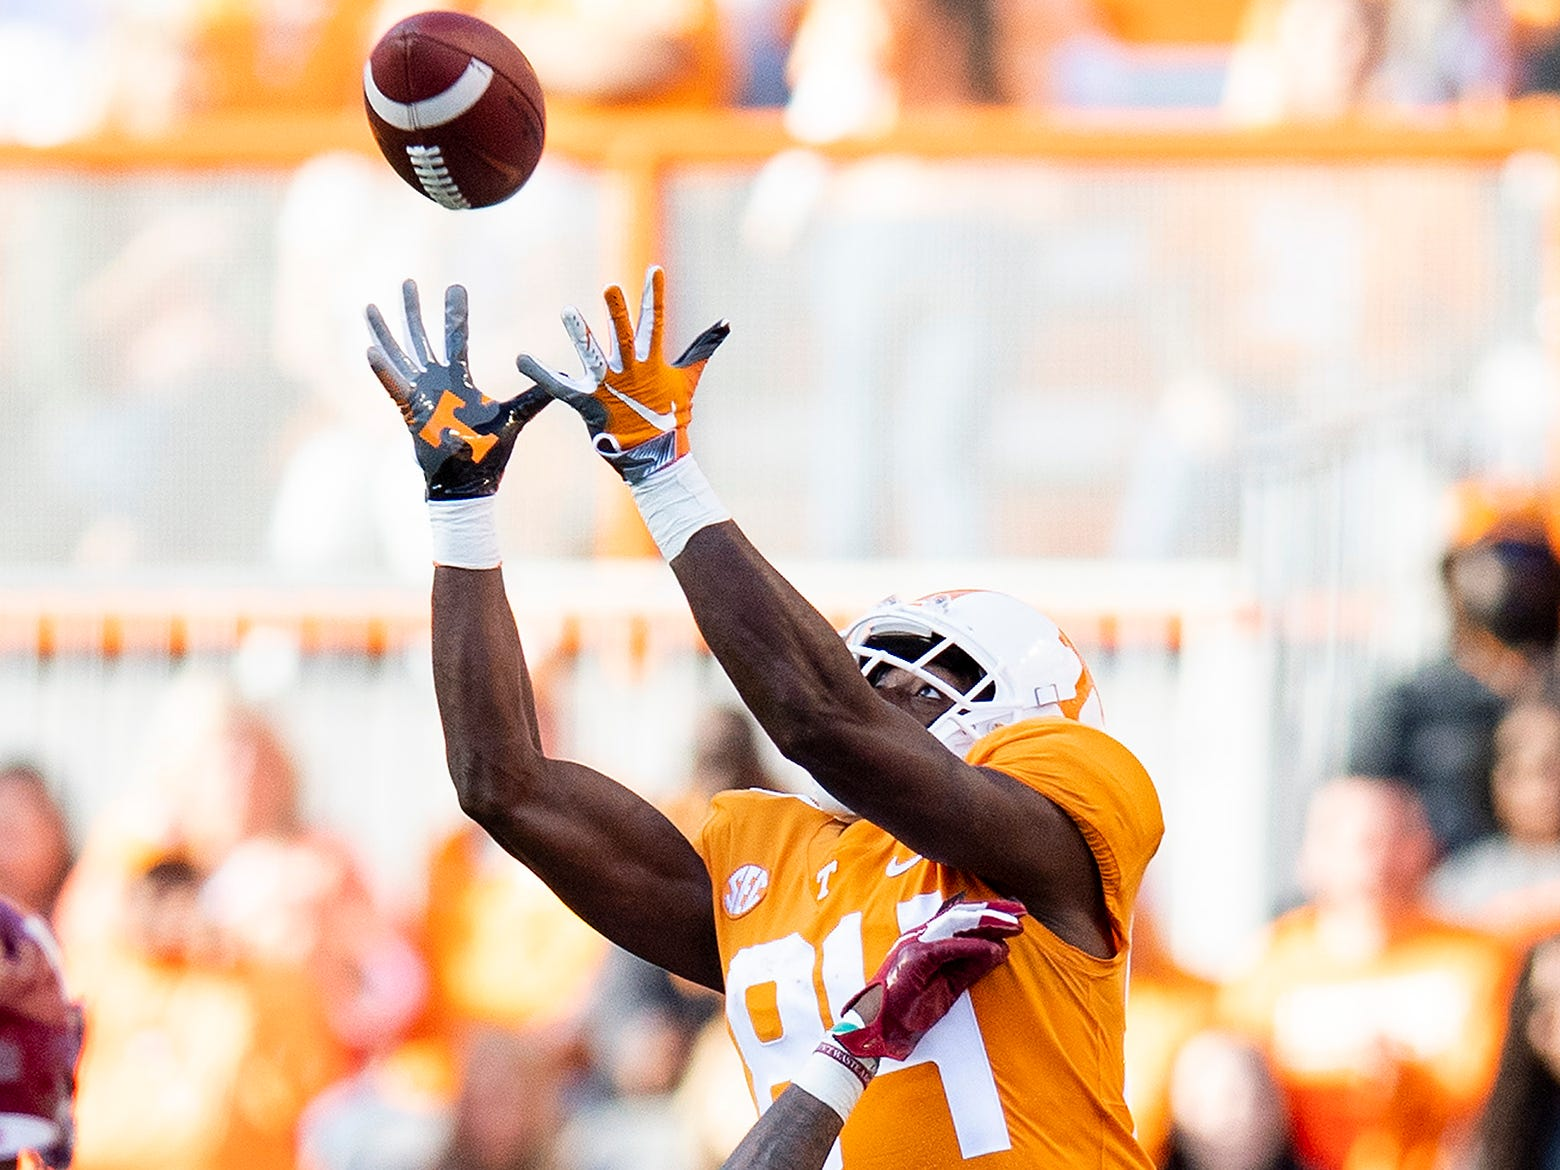 Tennessee receiver Josh Palmer (84) catches a pass over Alabama defensive back Saivion Smith (4) in first half action at Neyland Stadium in Knoxville, Tn., on Saturday October 20, 2018.